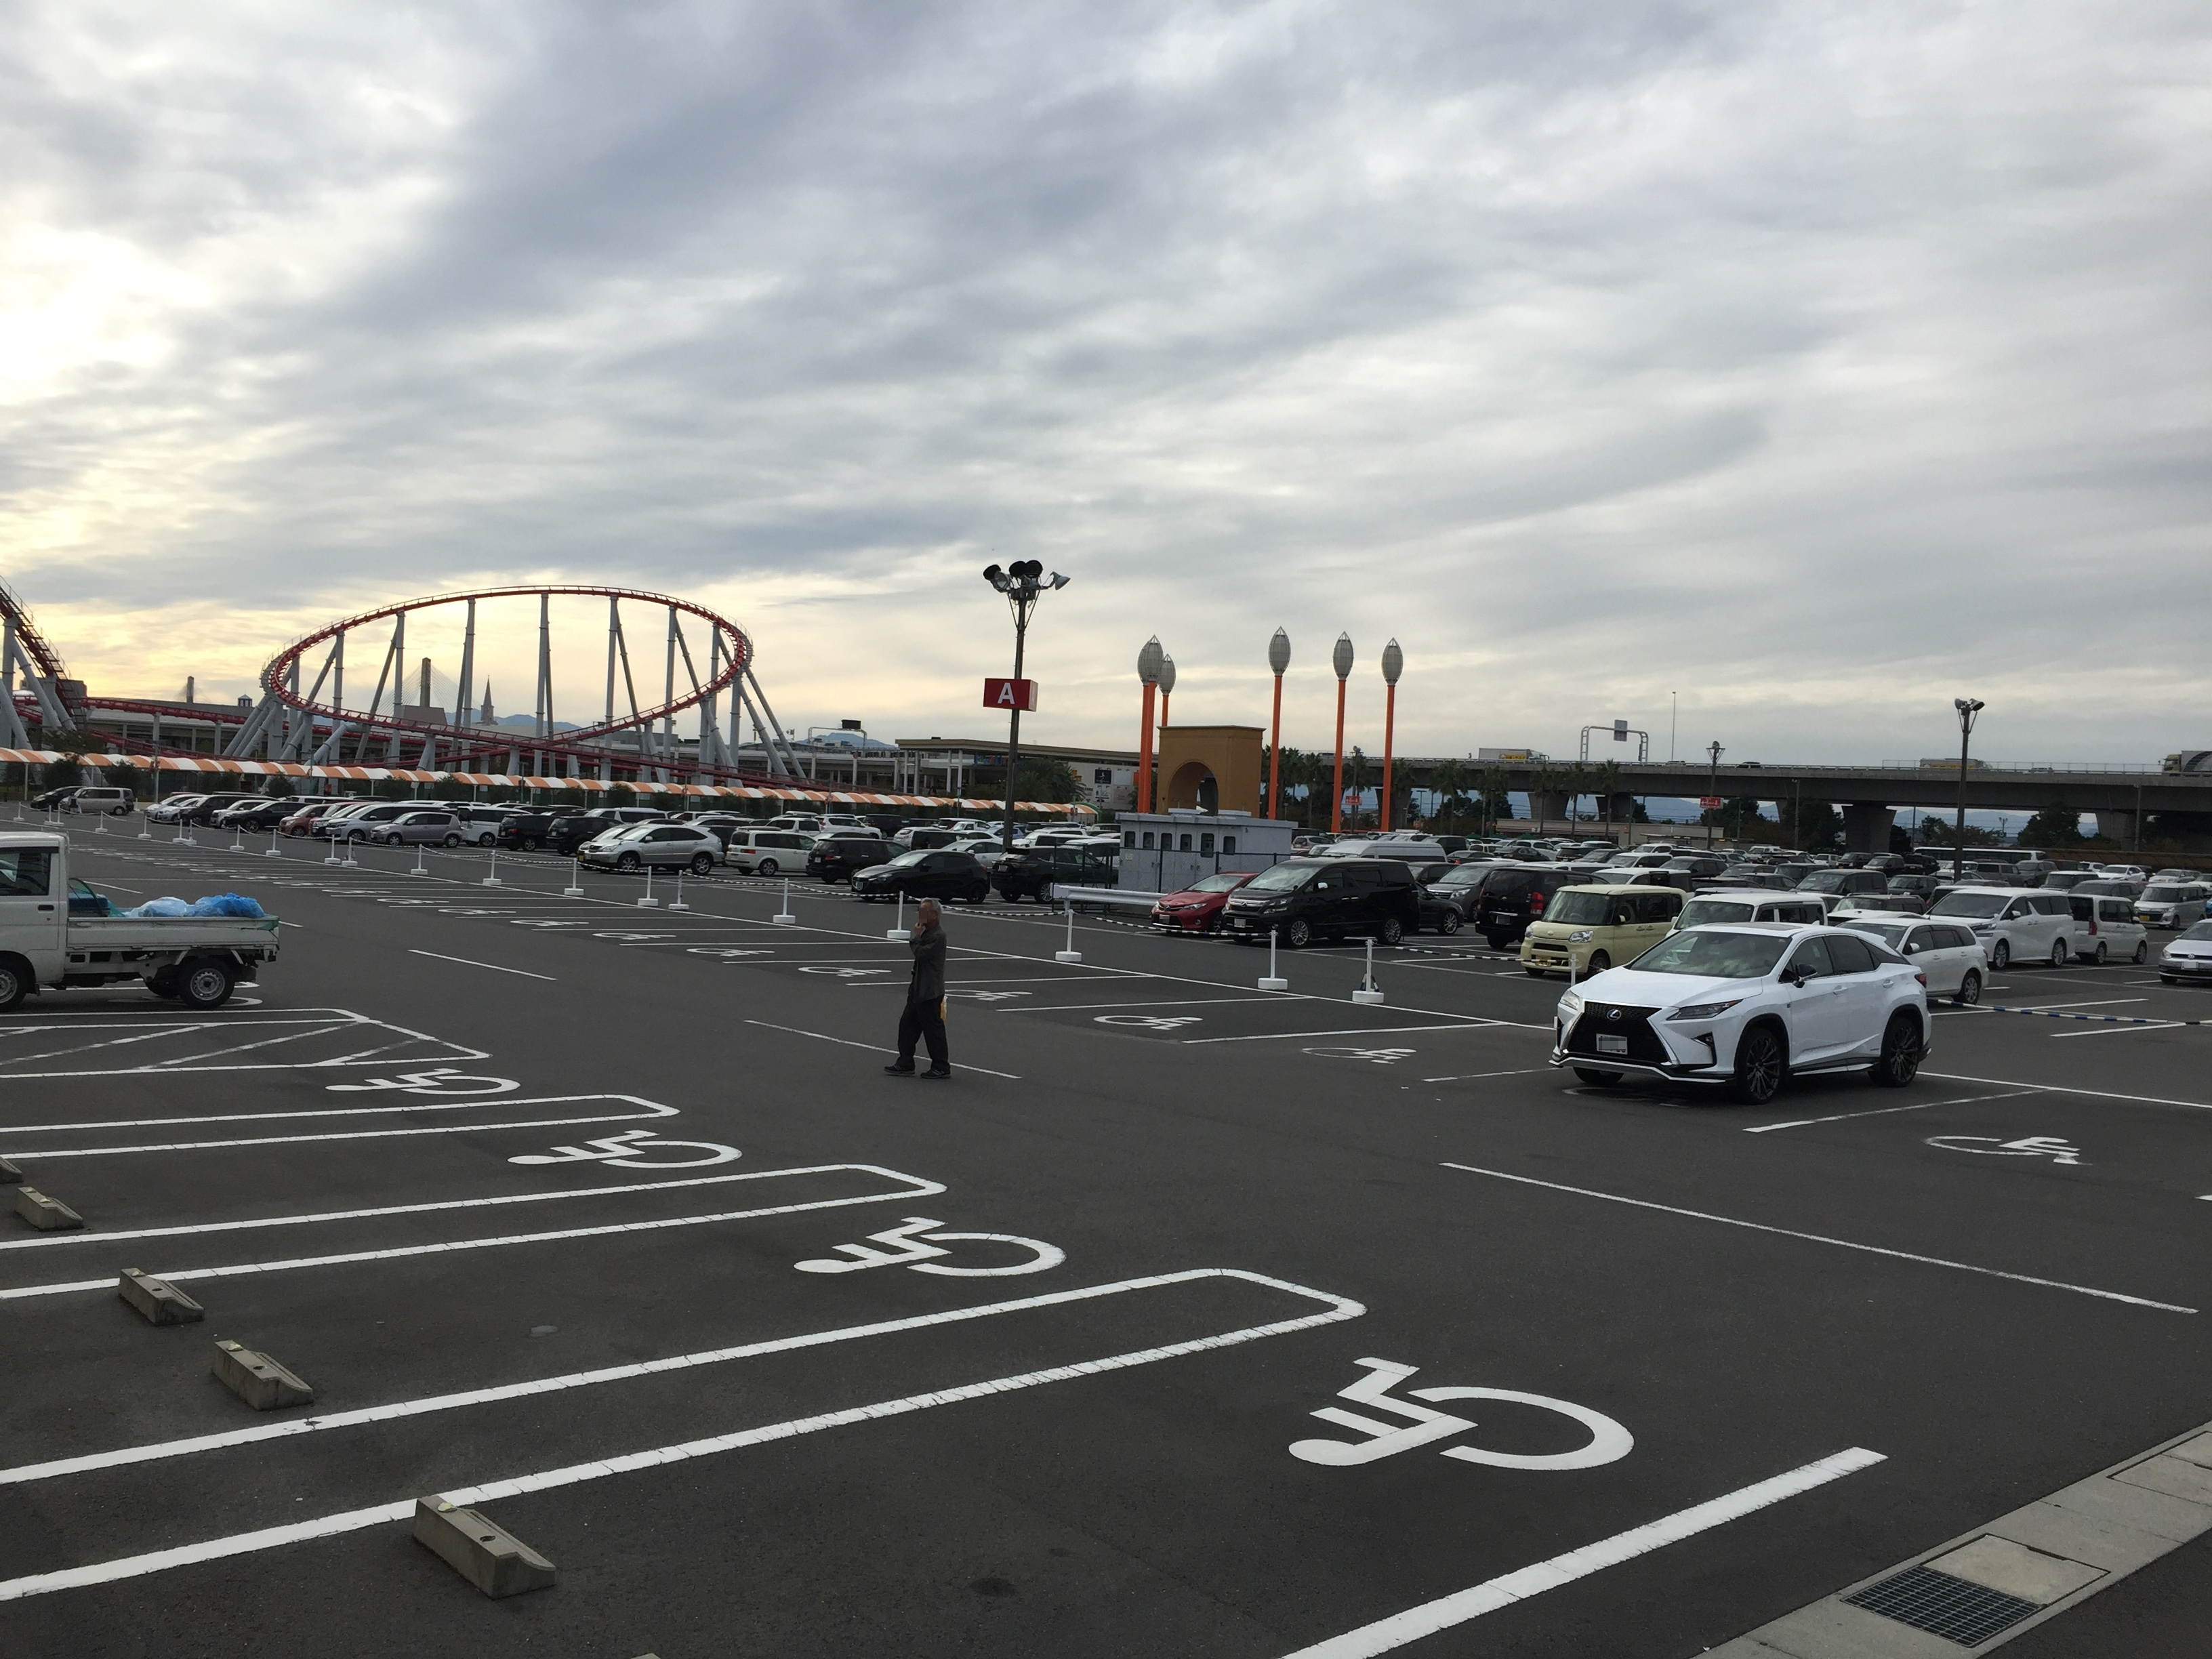 nagoya-anpanman-parking